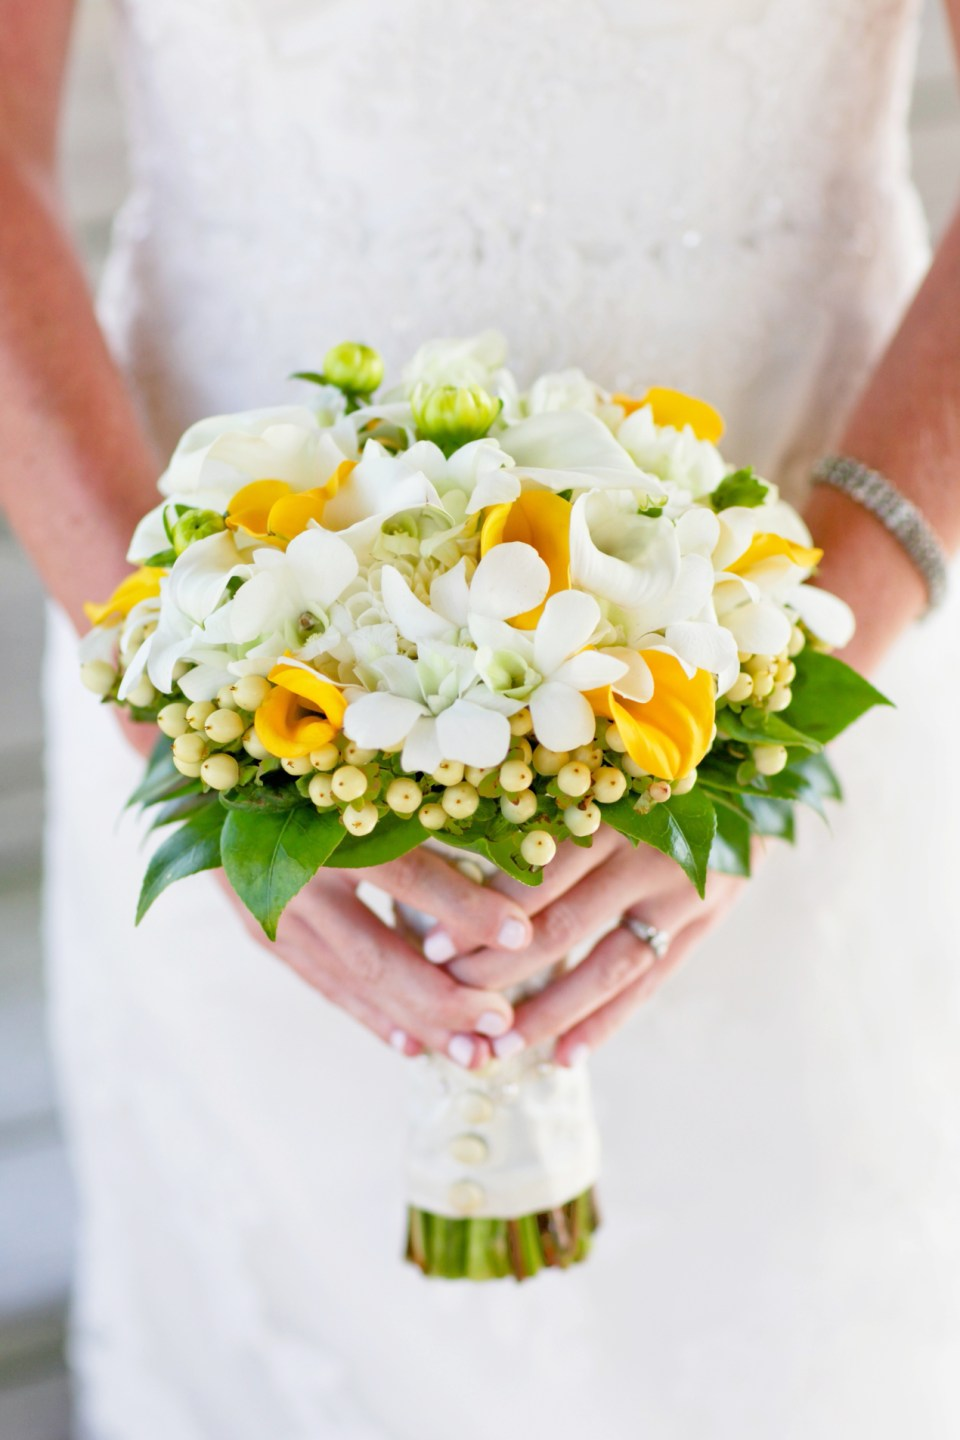 Summer-Wedding-Bouquet-Inspiration-Flowers-Bridal-Bridesmaids418